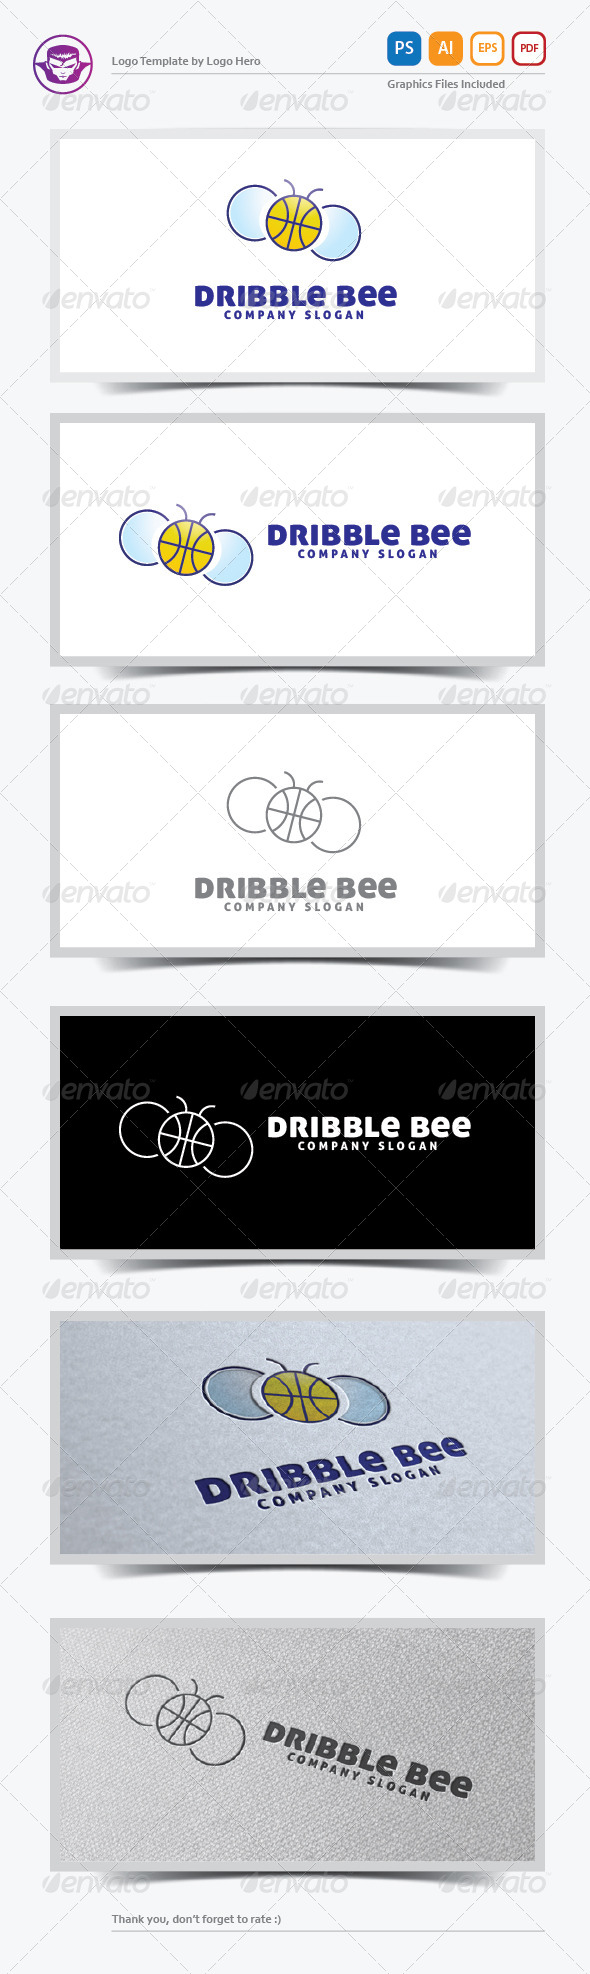 GraphicRiver Dribble Bee Logo Template 5736892